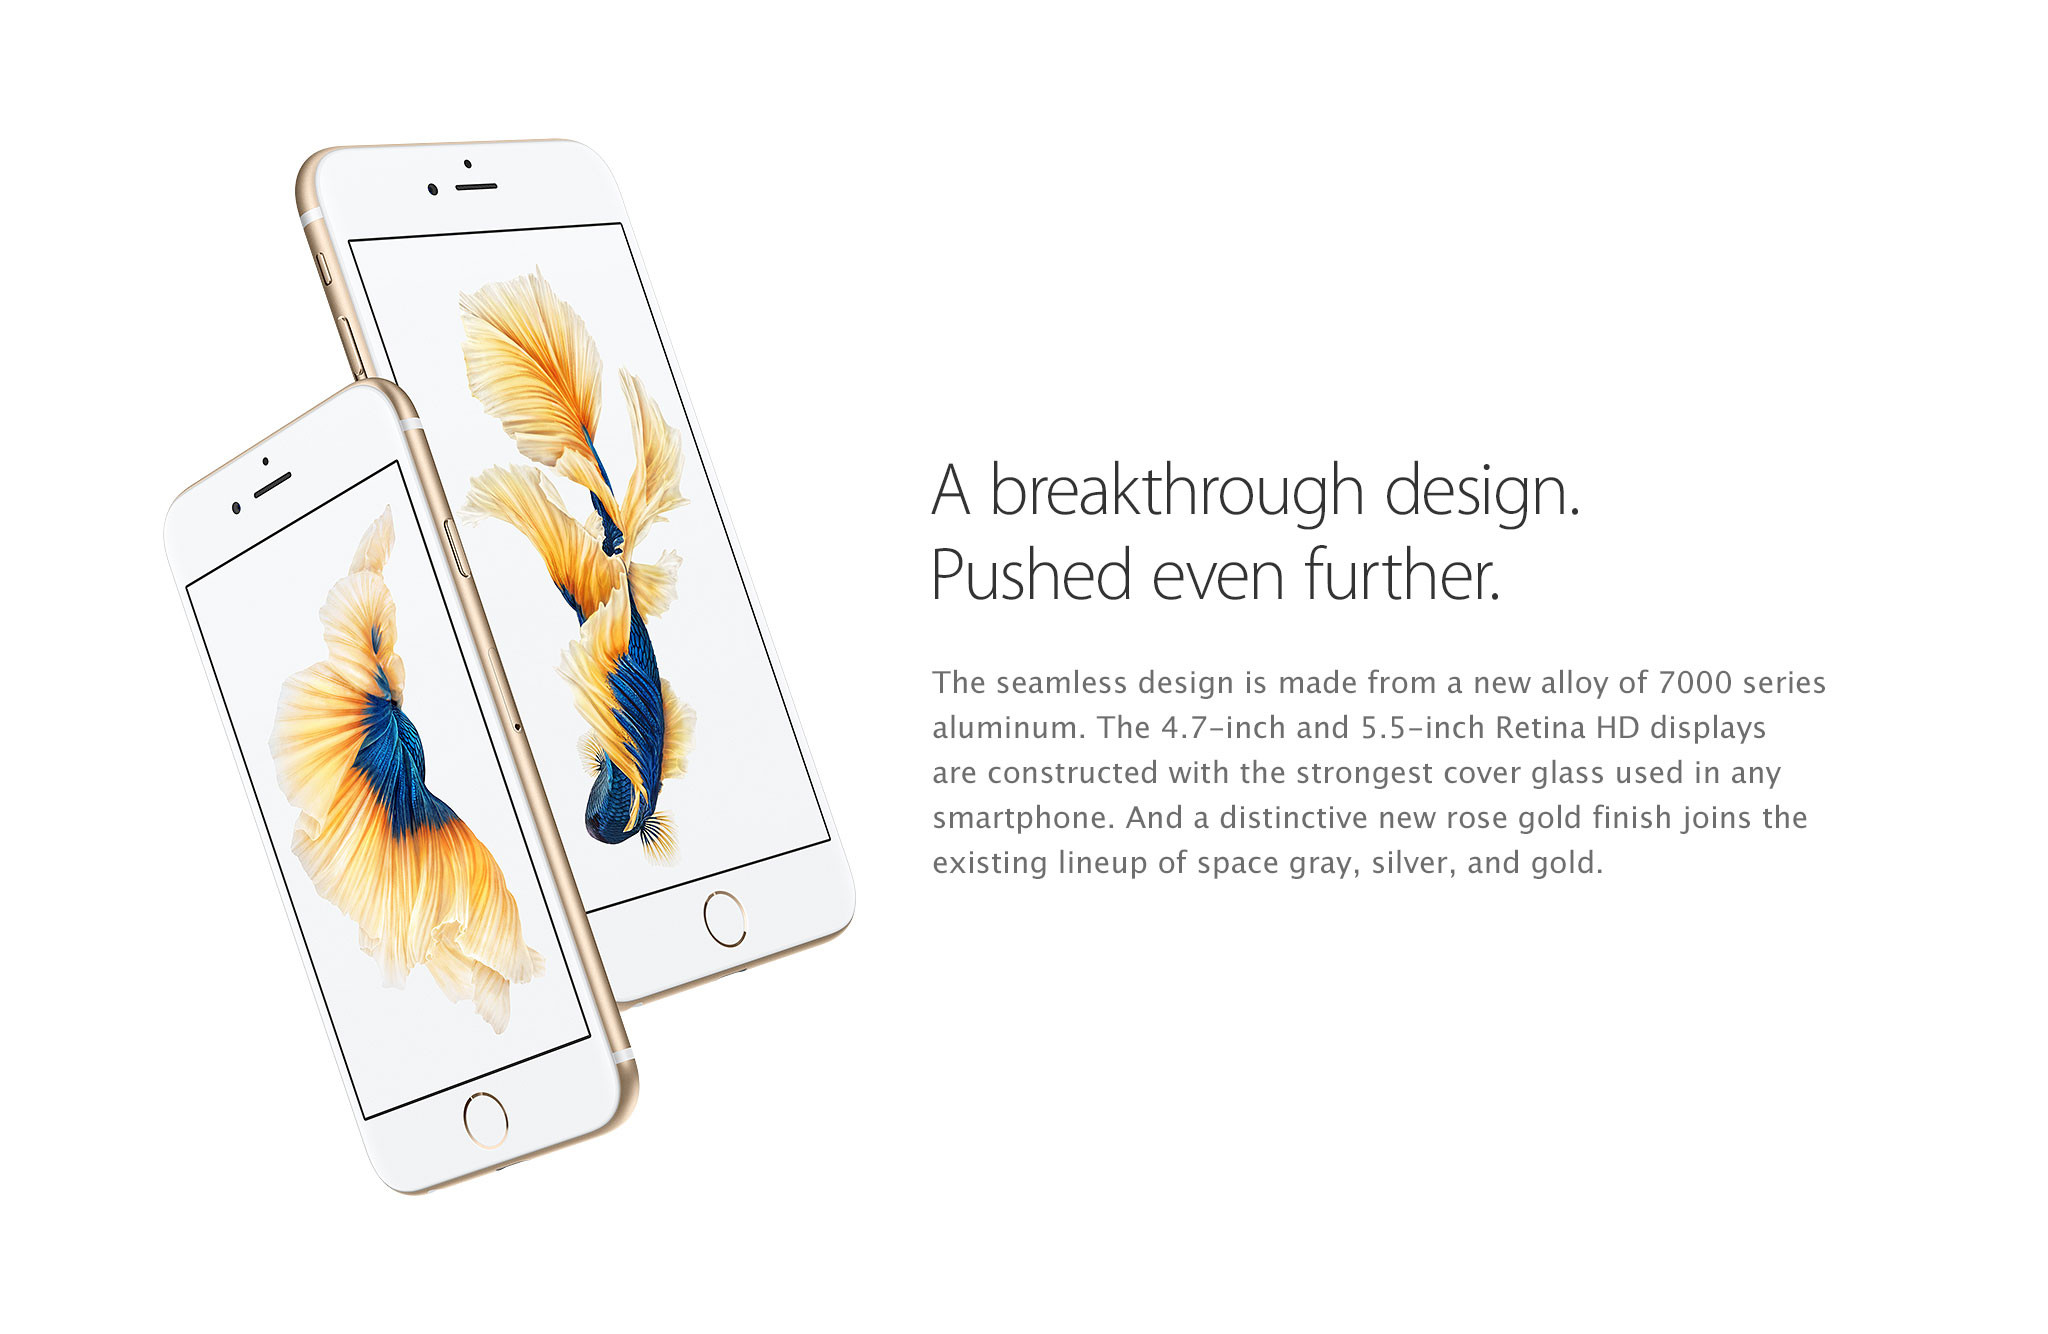 A breakthrough design. Pushed even further. The seamless design is made from a new alloy of 7000 series aluminum. The 4.7-inch and 5.5-inch Retina HD displays are constructed with the strongest cover glass used in any smartphone. And a distinctive new rose gold finish joins the existing lineup of space gray, silver, and gold.